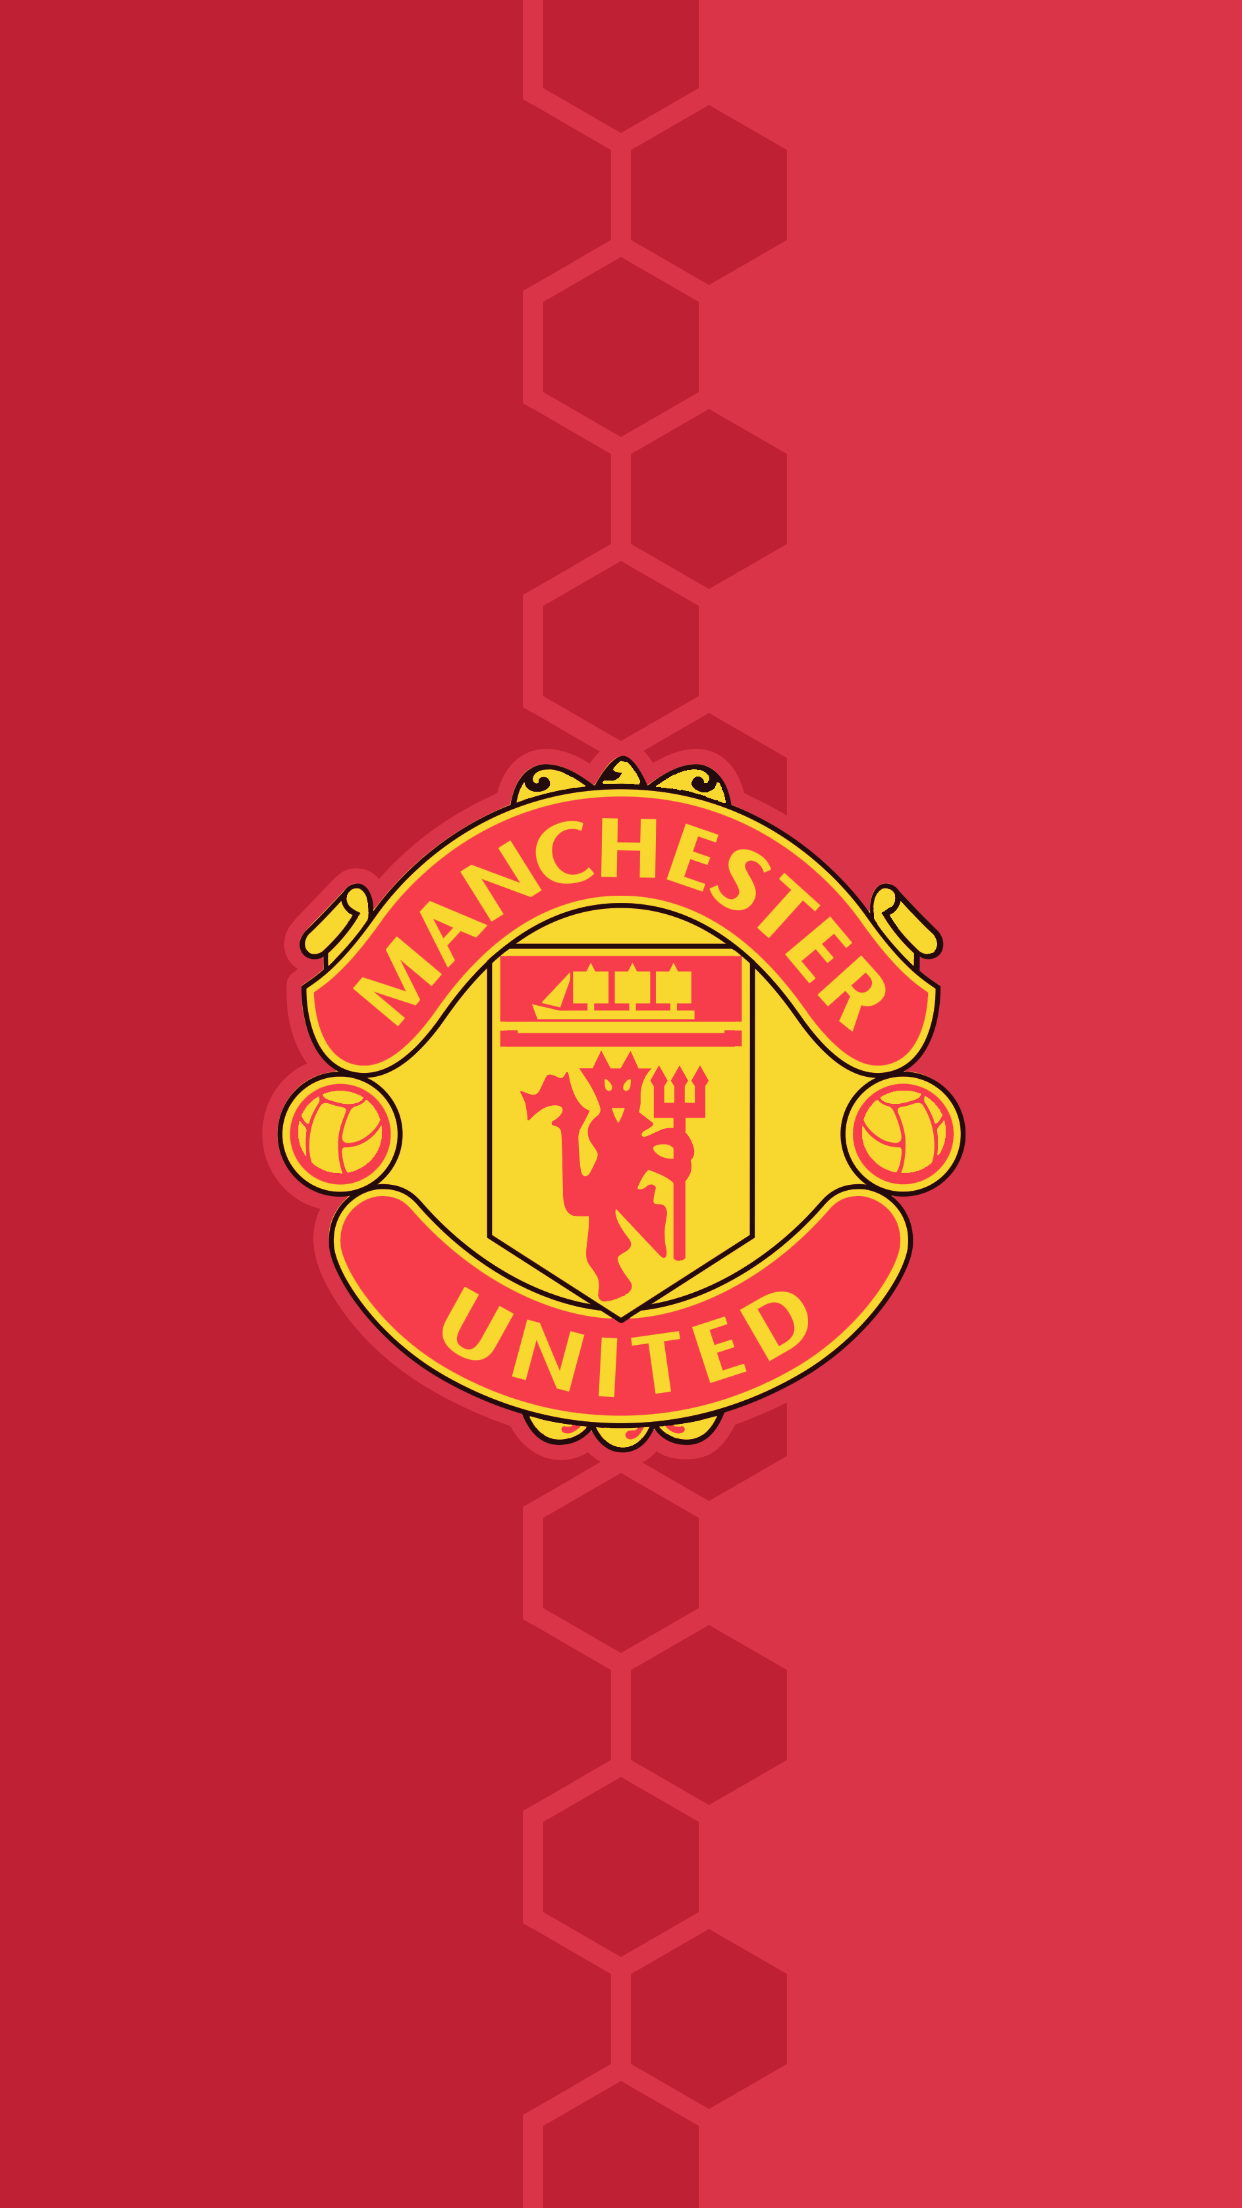 Manchester united wallpapers pic mch029369 dzbc manchester united wallpapers pic mch029369 voltagebd Images